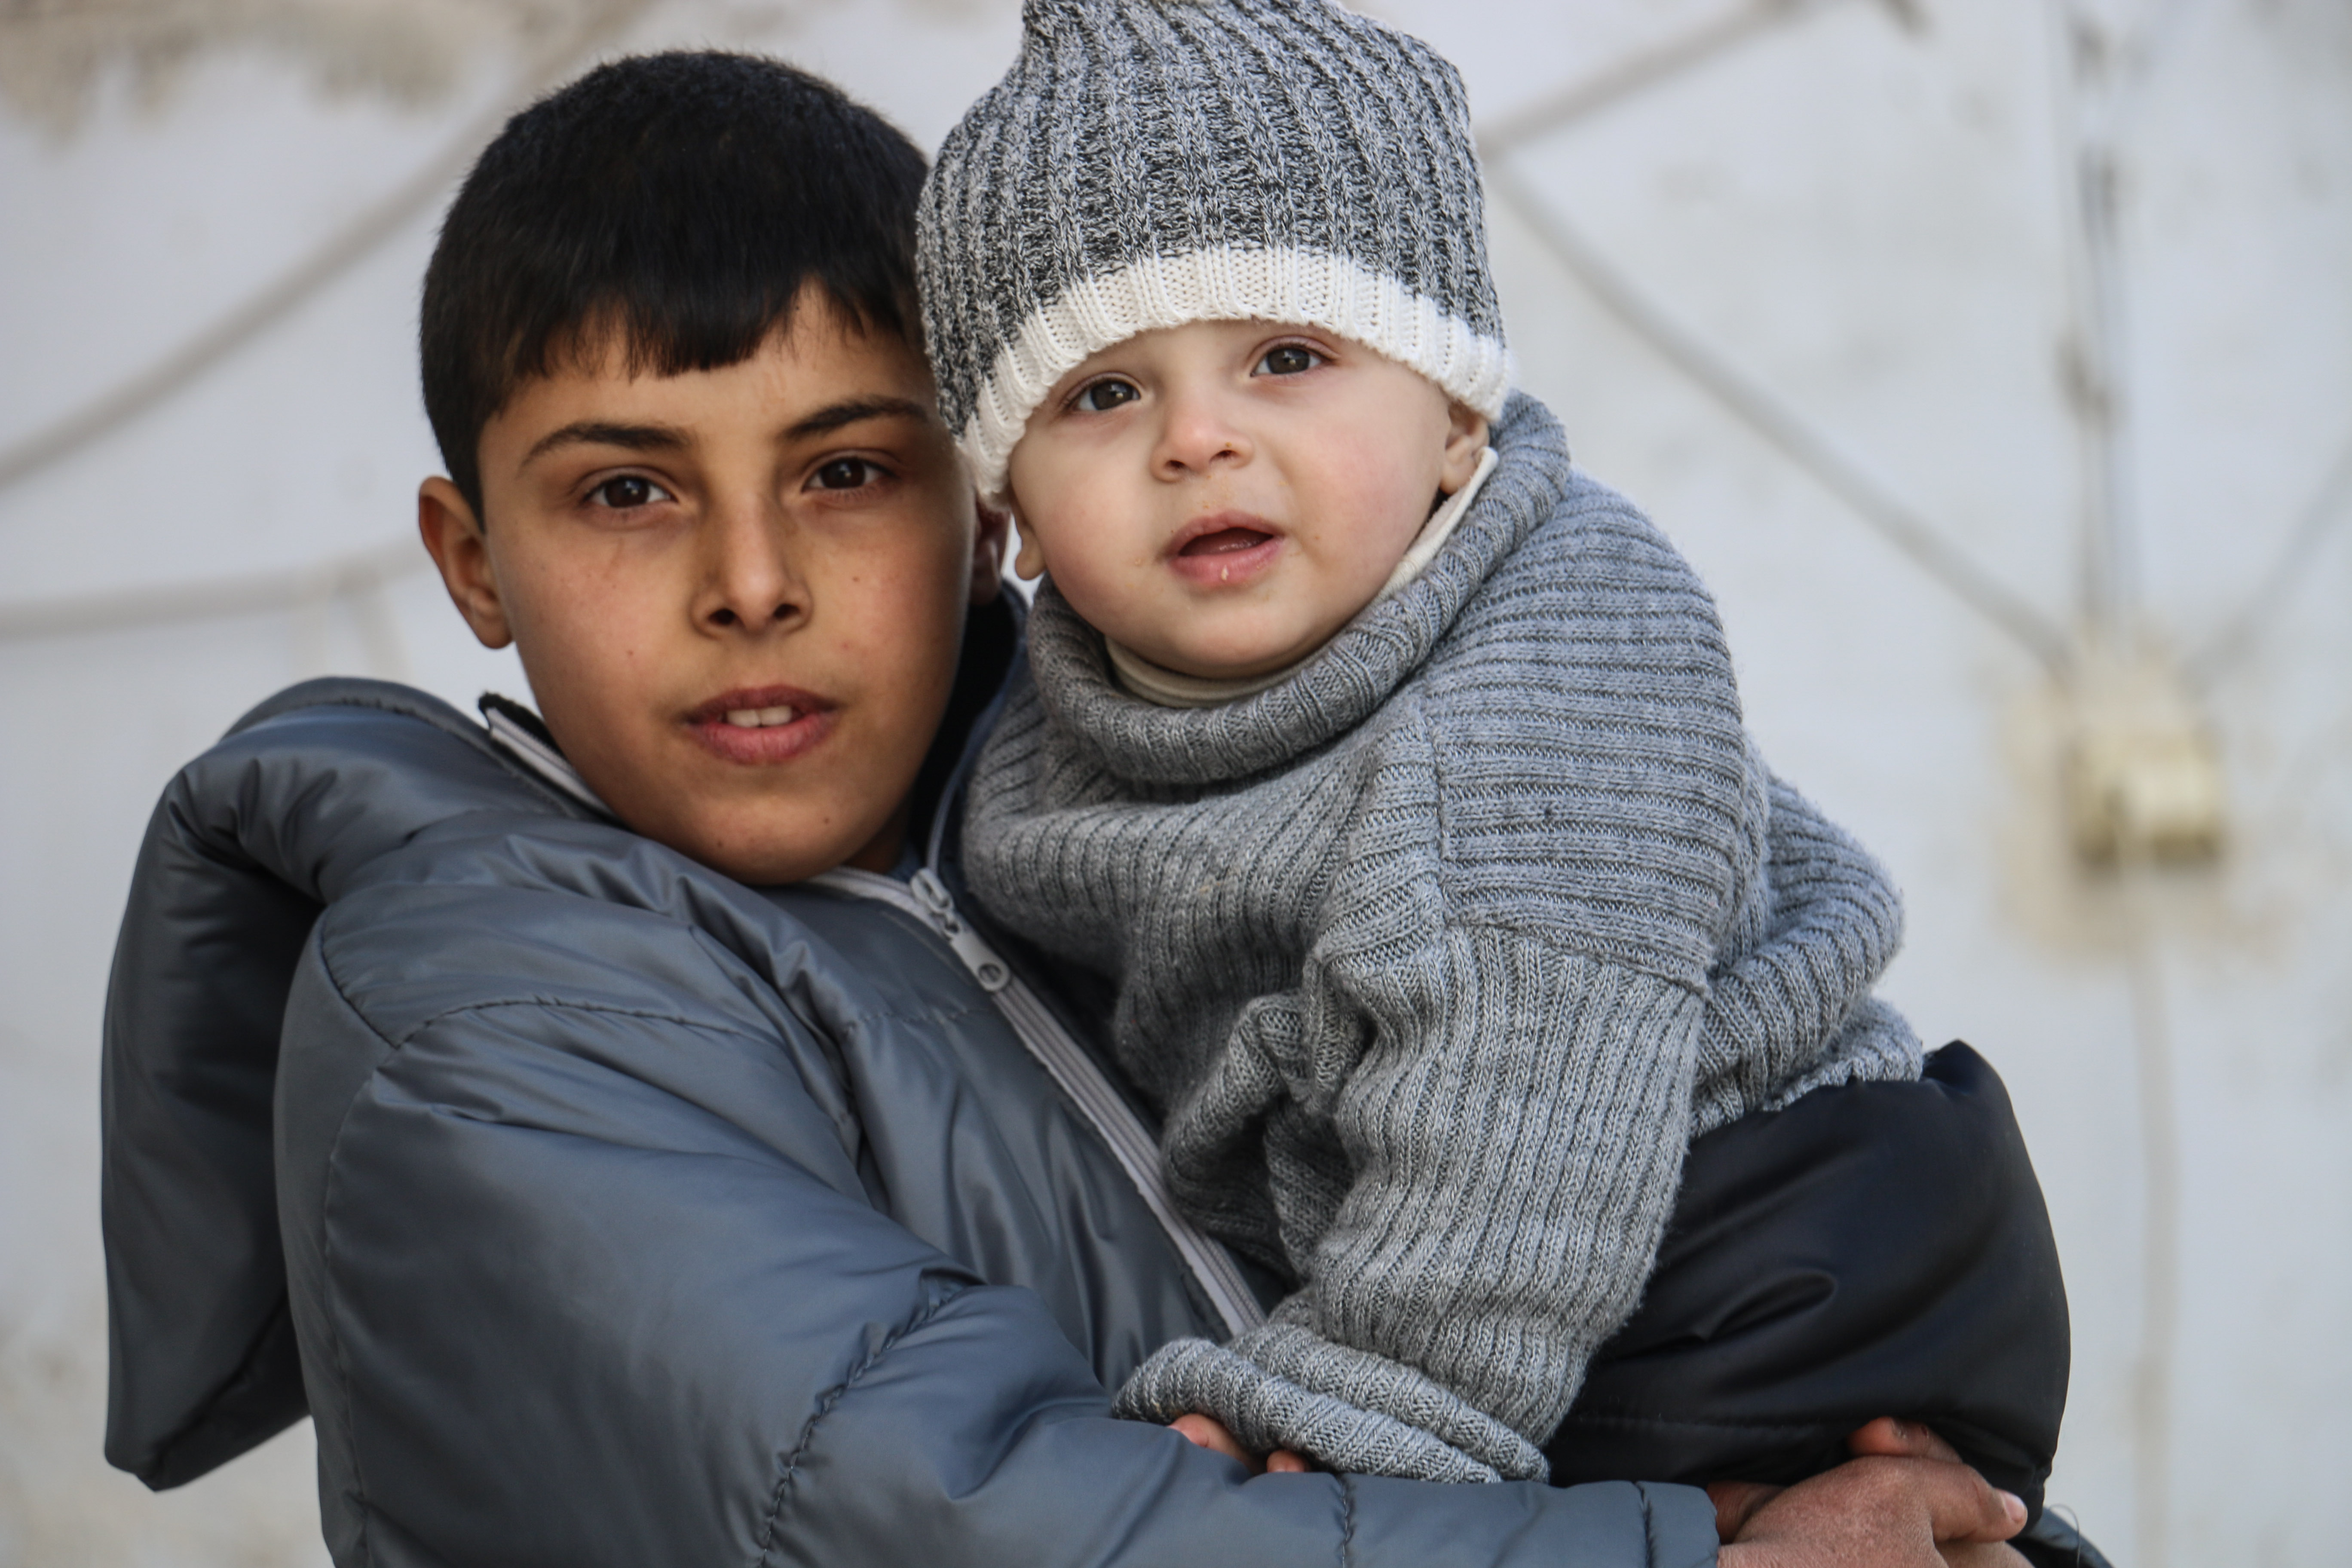 bd7d410b1 Children and families in Syria face dropping temperatures with ...